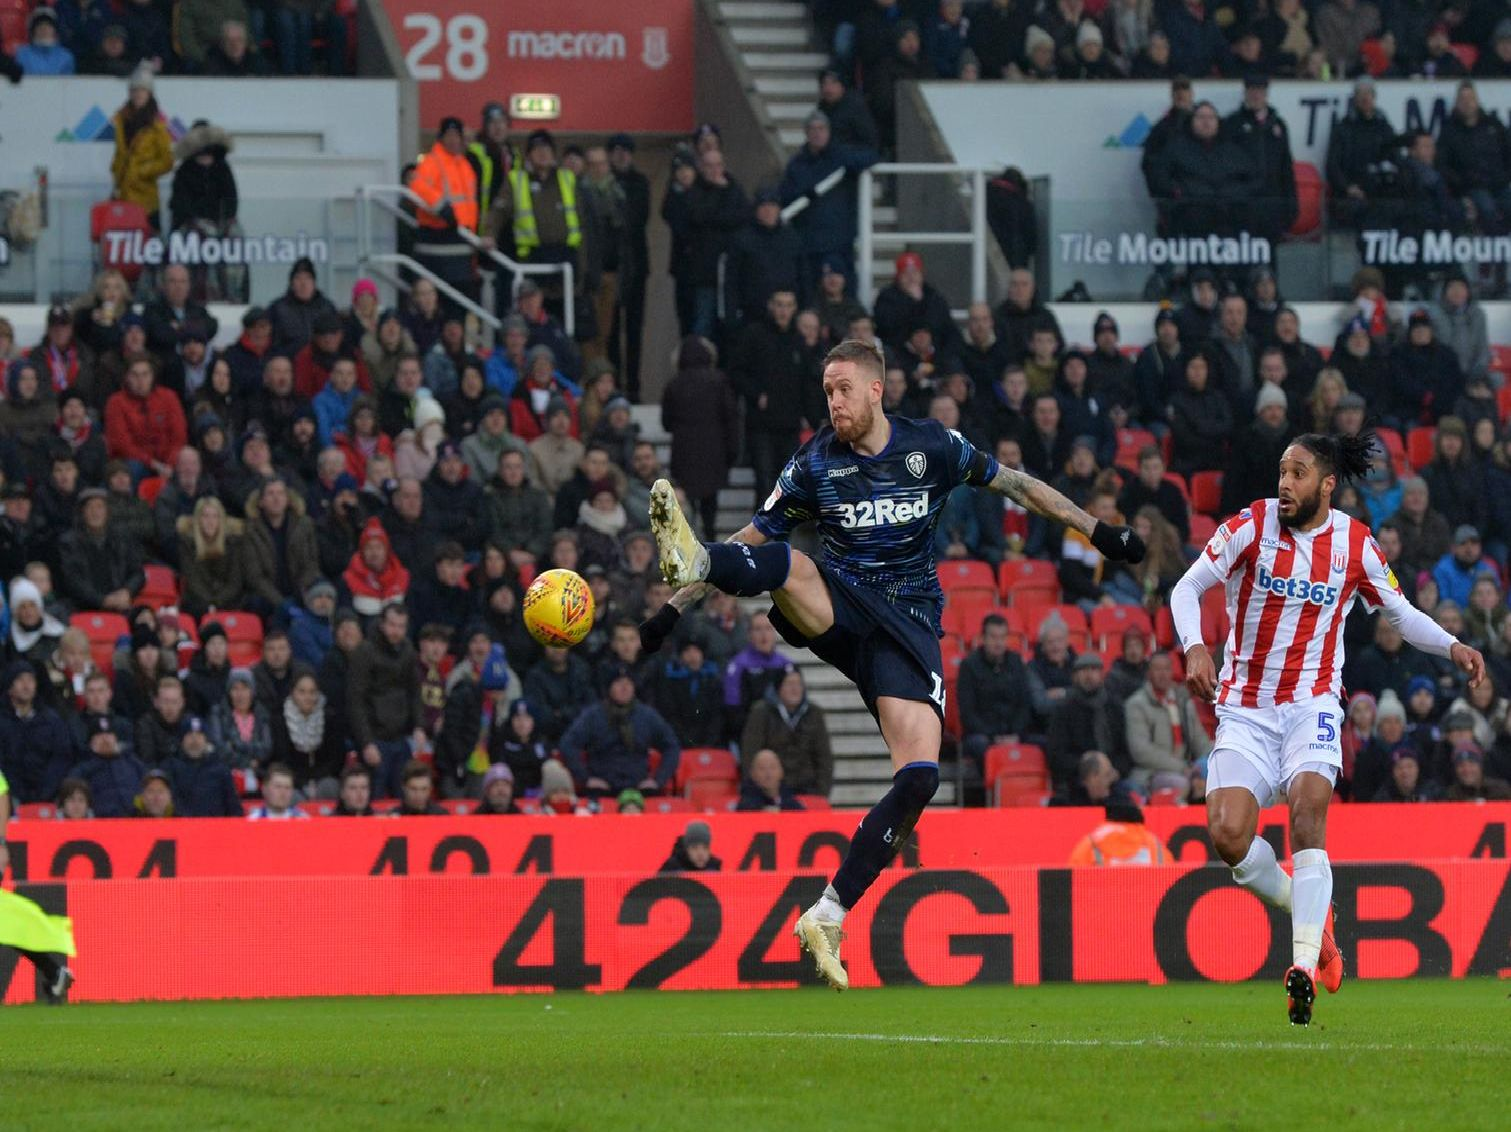 Leeds United fall to Stoke defeat